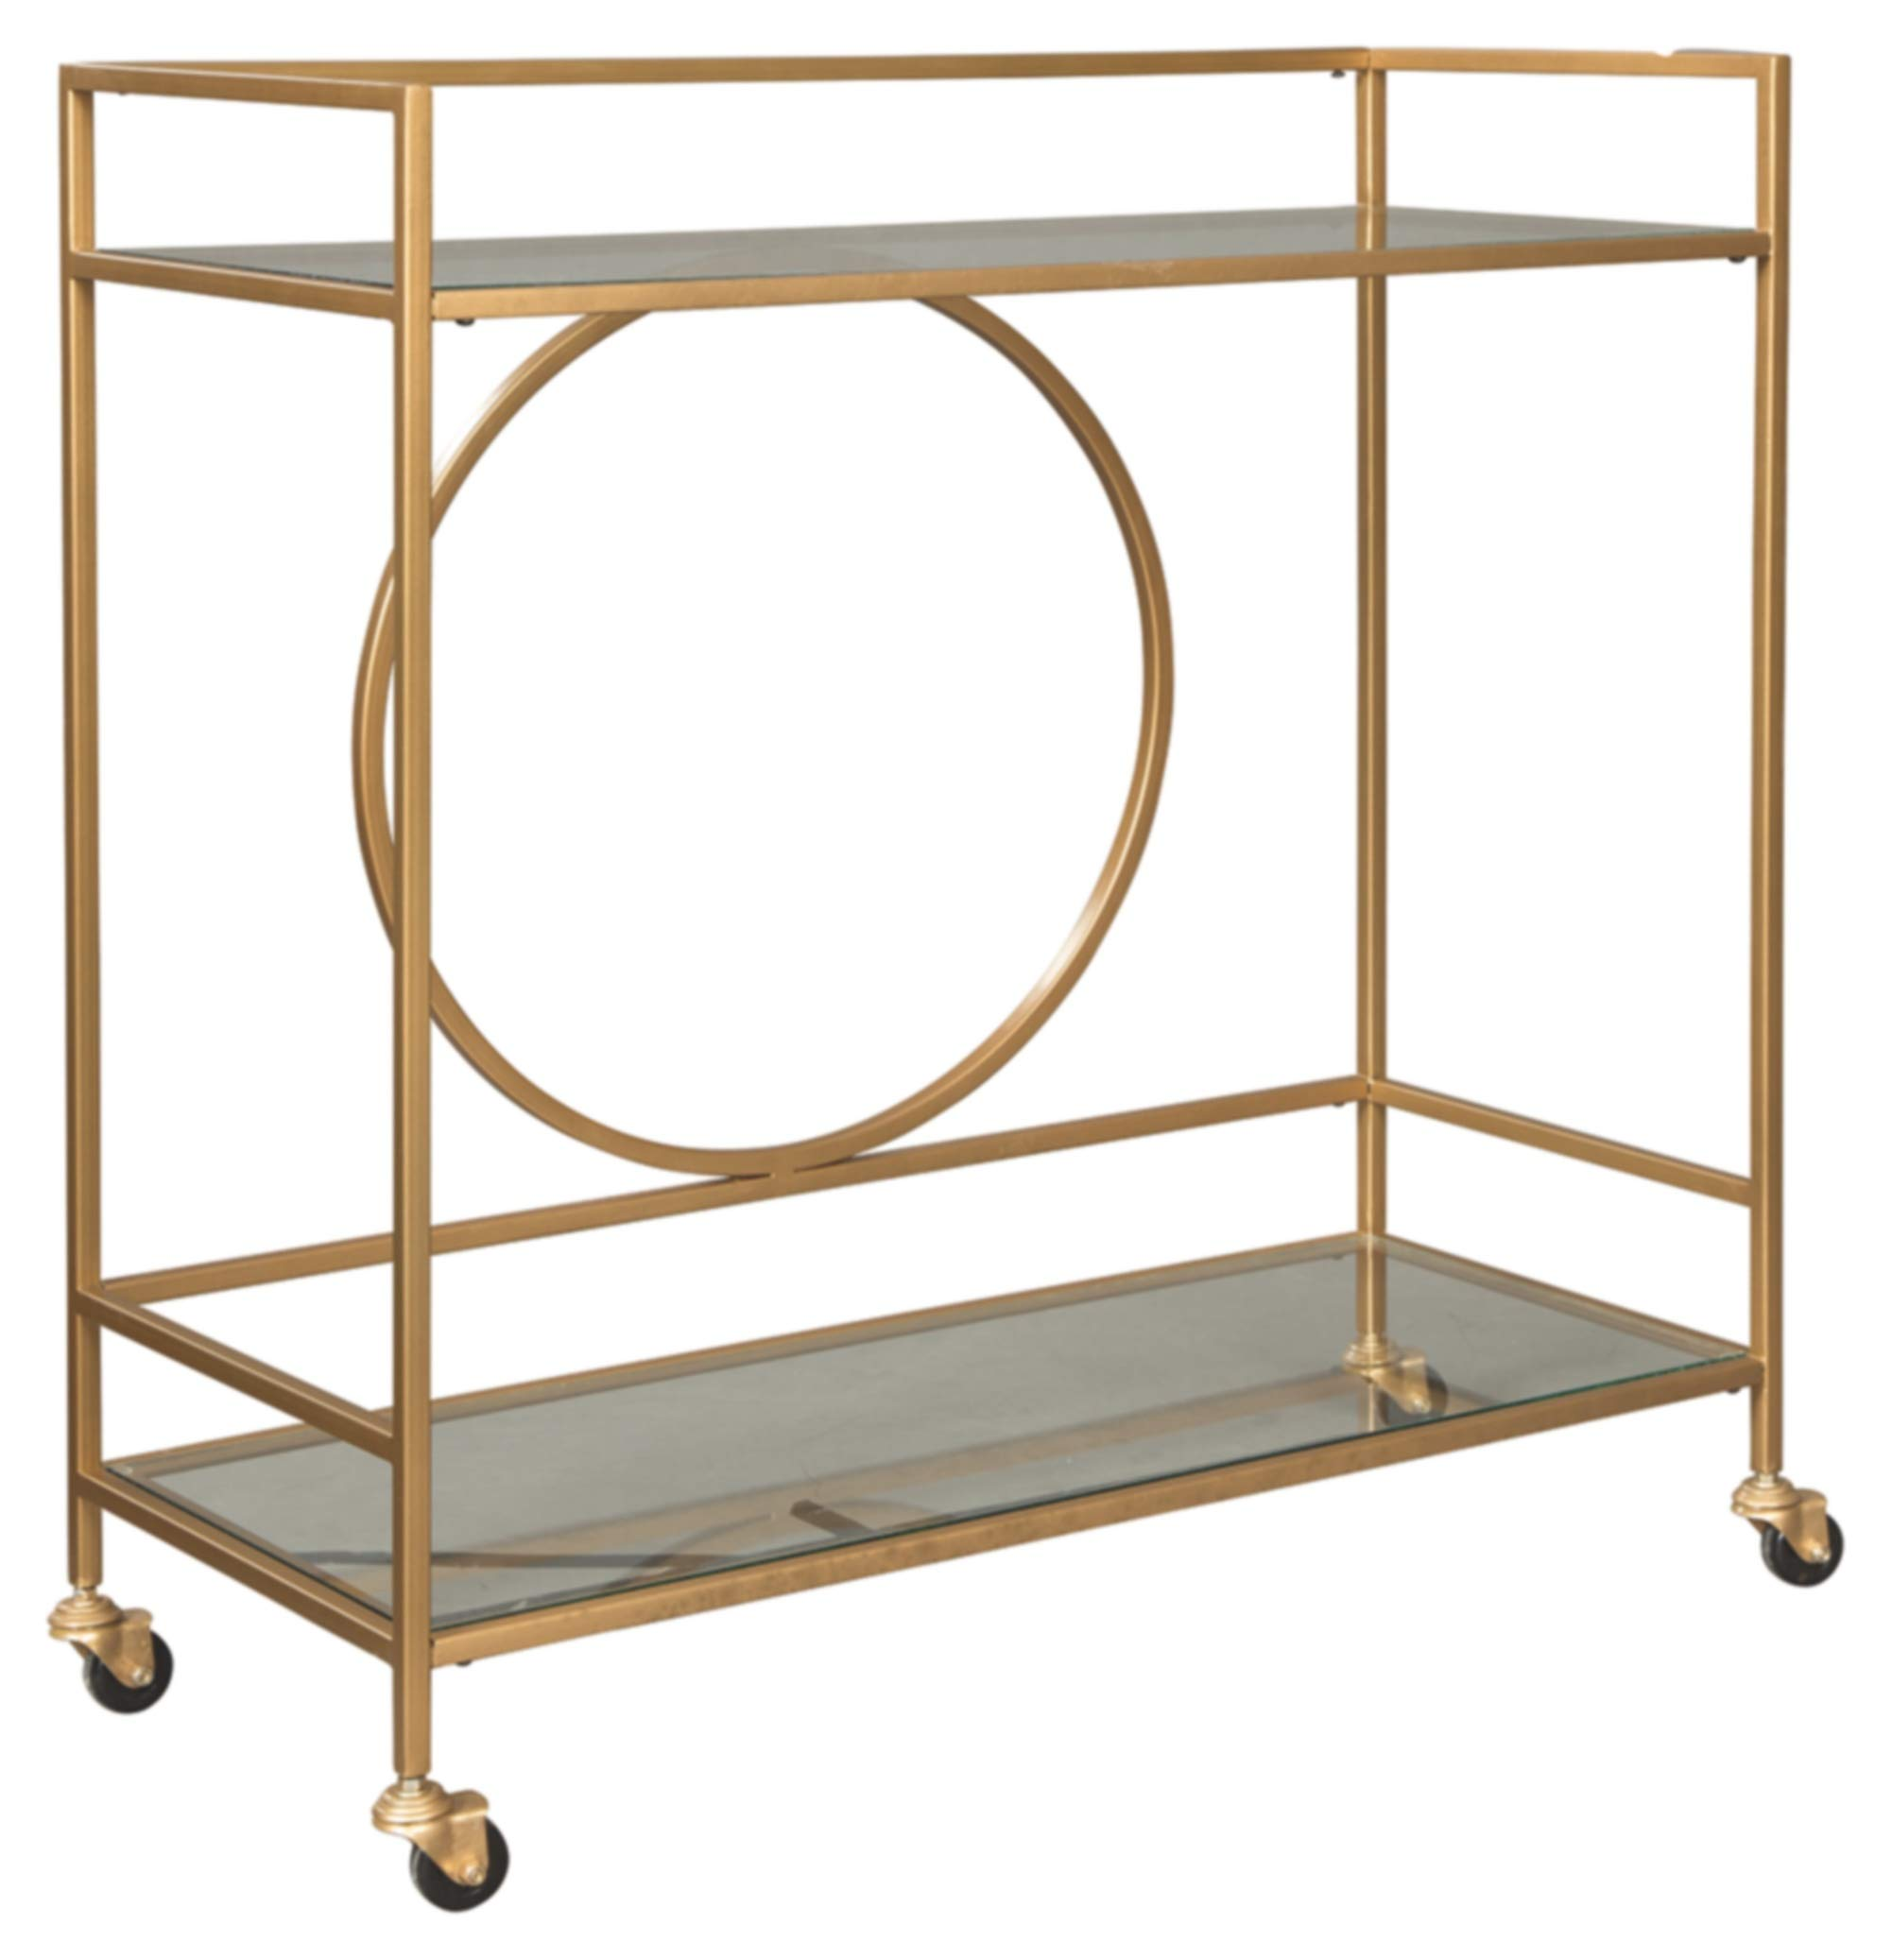 Signature Design by Ashley A4000165 Jackford Bar Cart, Mid Century Gold by Signature Design by Ashley